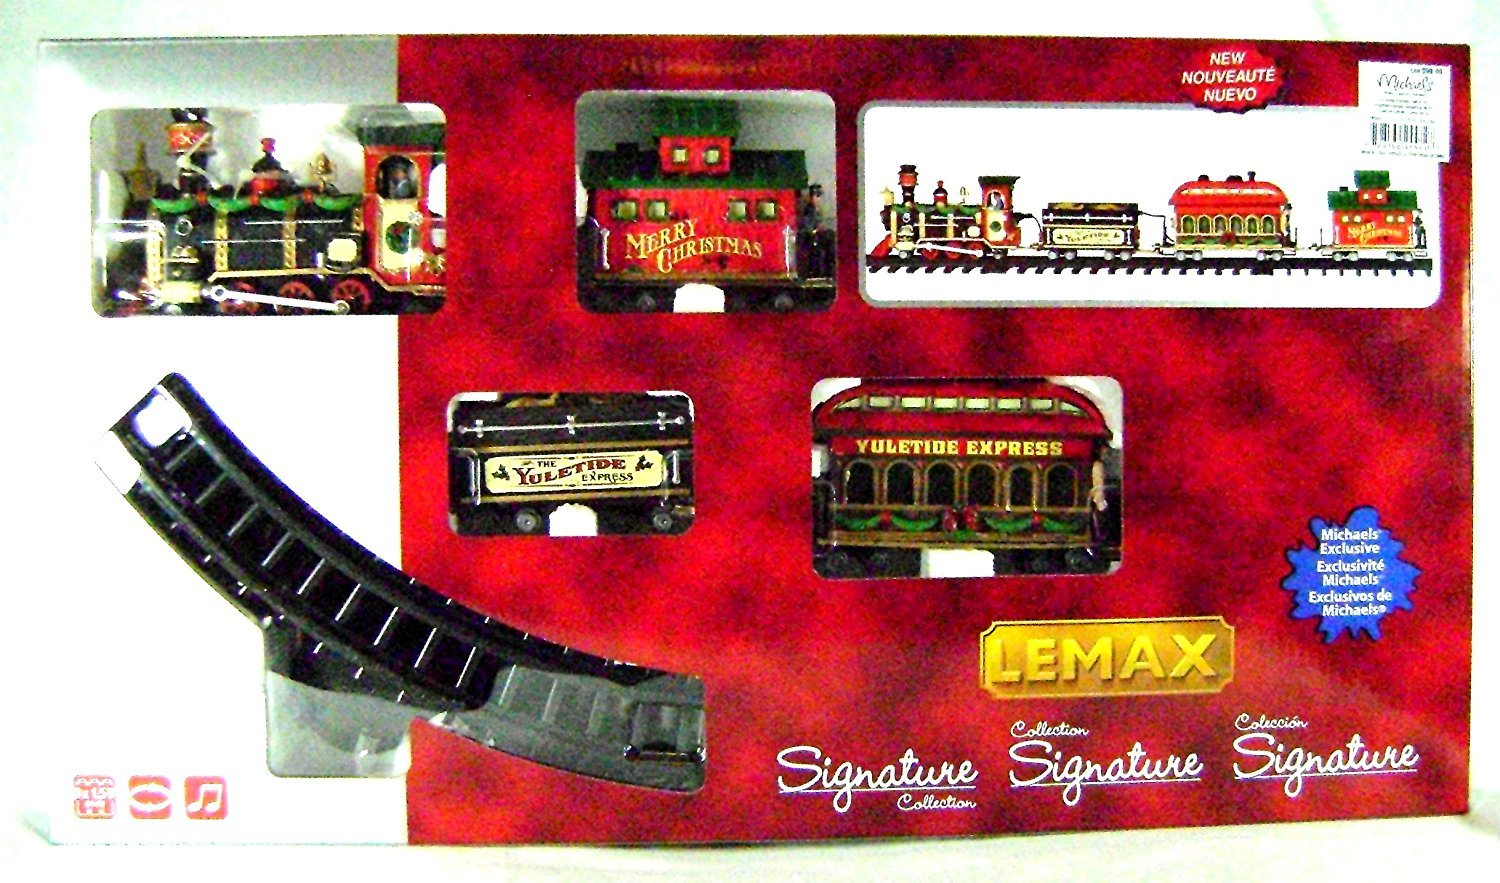 Lemax 24472 Village Yuletide Express Battery Operated Train, 4.5 Volt by Lemax Village Collection